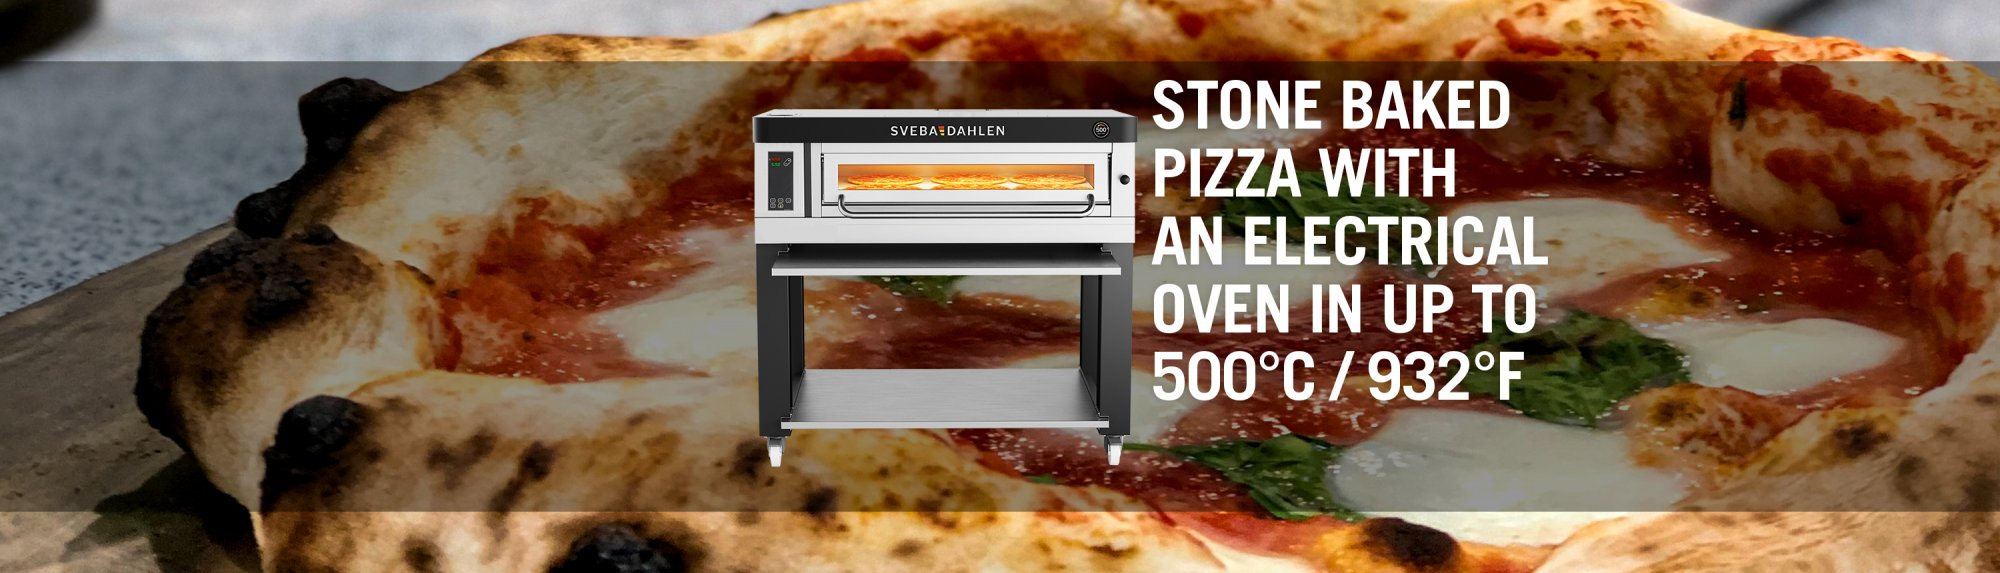 Sveba Dahlen Pizza High Temp electrical pizza oven 500 degrees celsius 932 farenheit stone baked neapolitan pizza